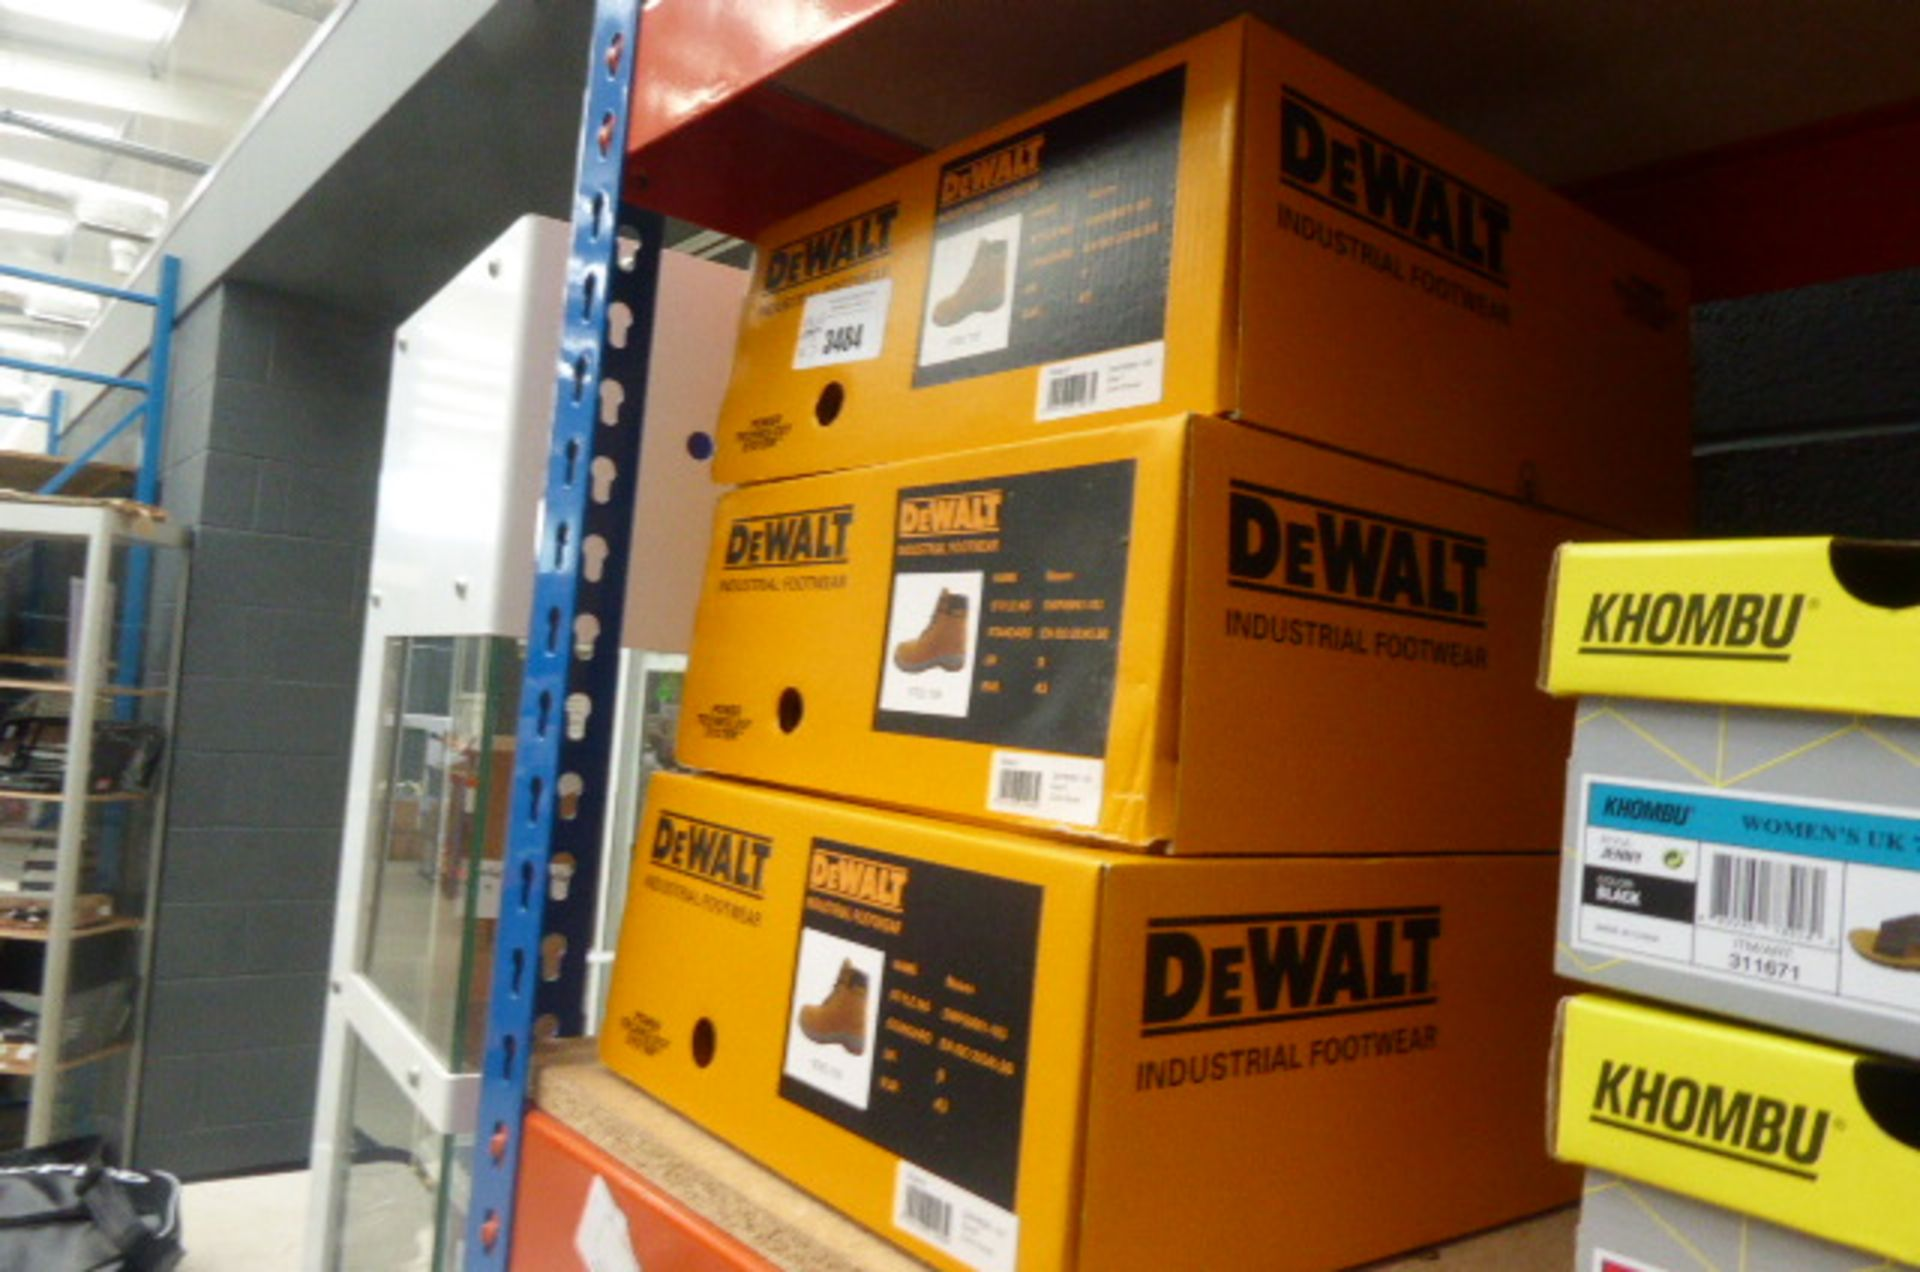 Lot 3484 - 3 boxed pairs of used De Walt industrial boots